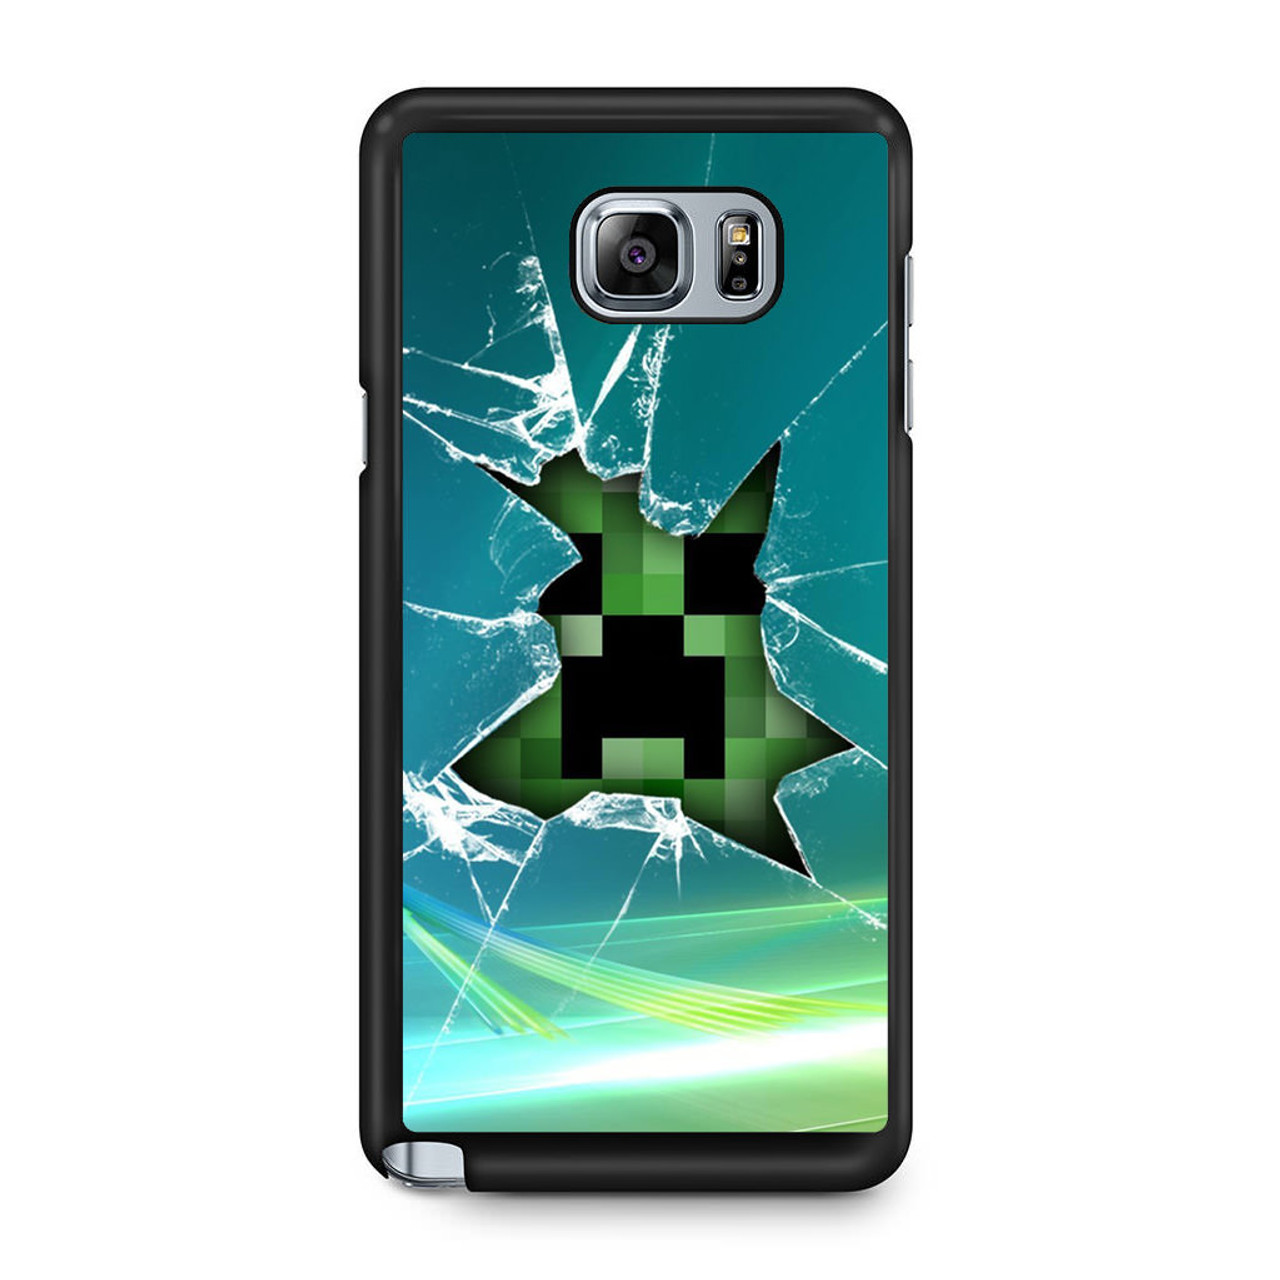 Minecraft Creeper Glass Broken Samsung Galaxy Note 5 Case - CASESHUNTER 2d92c5b06